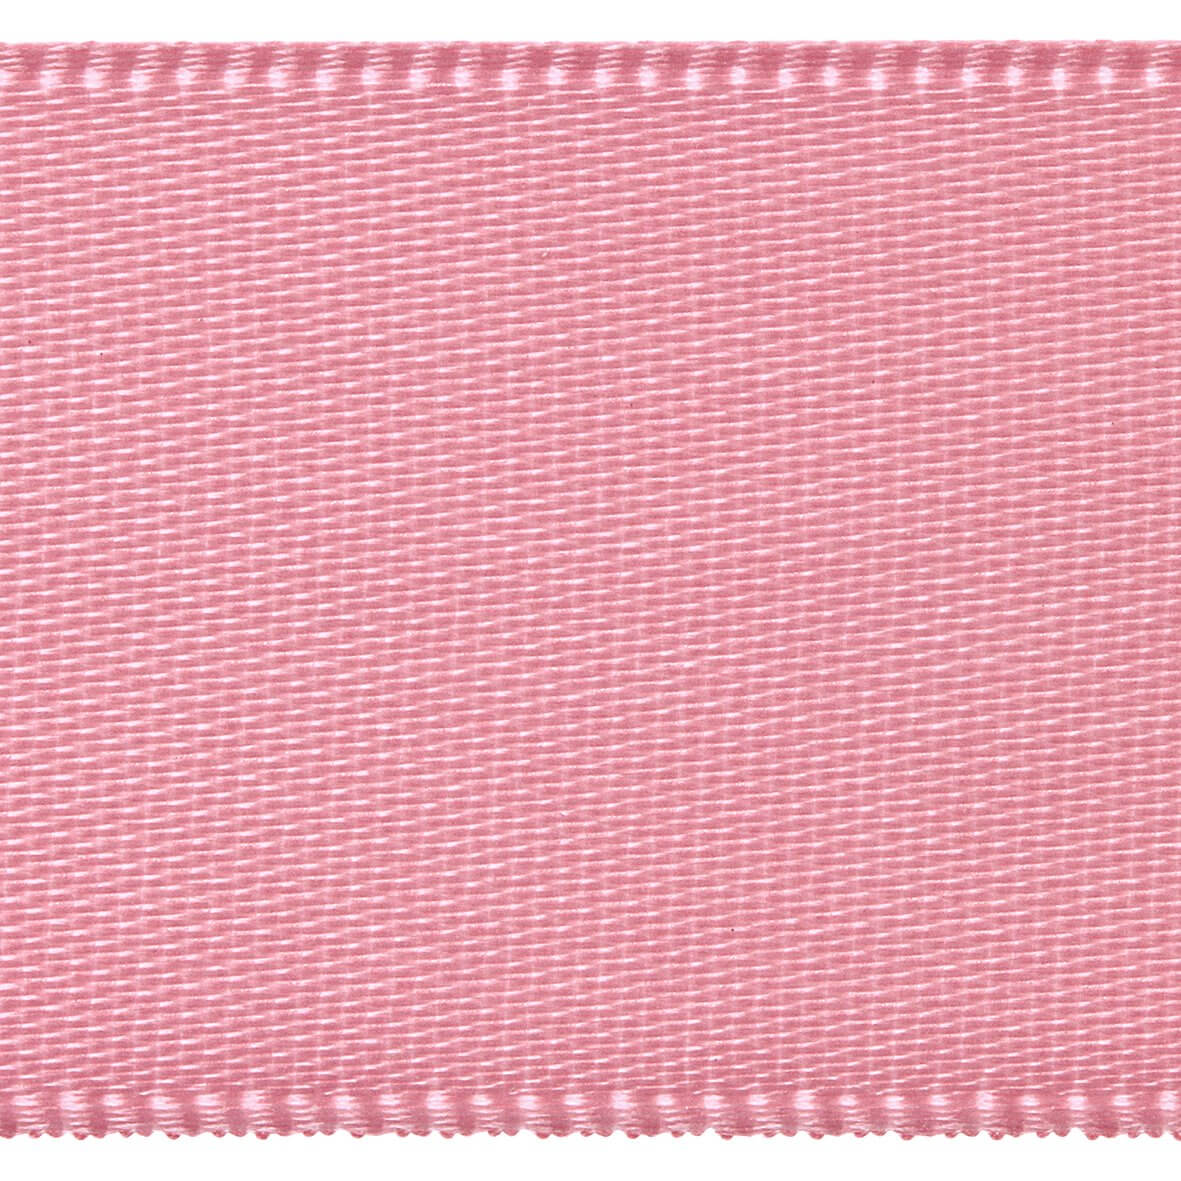 Rose Pink Club Green 15mm Double Faced Satin Ribbon